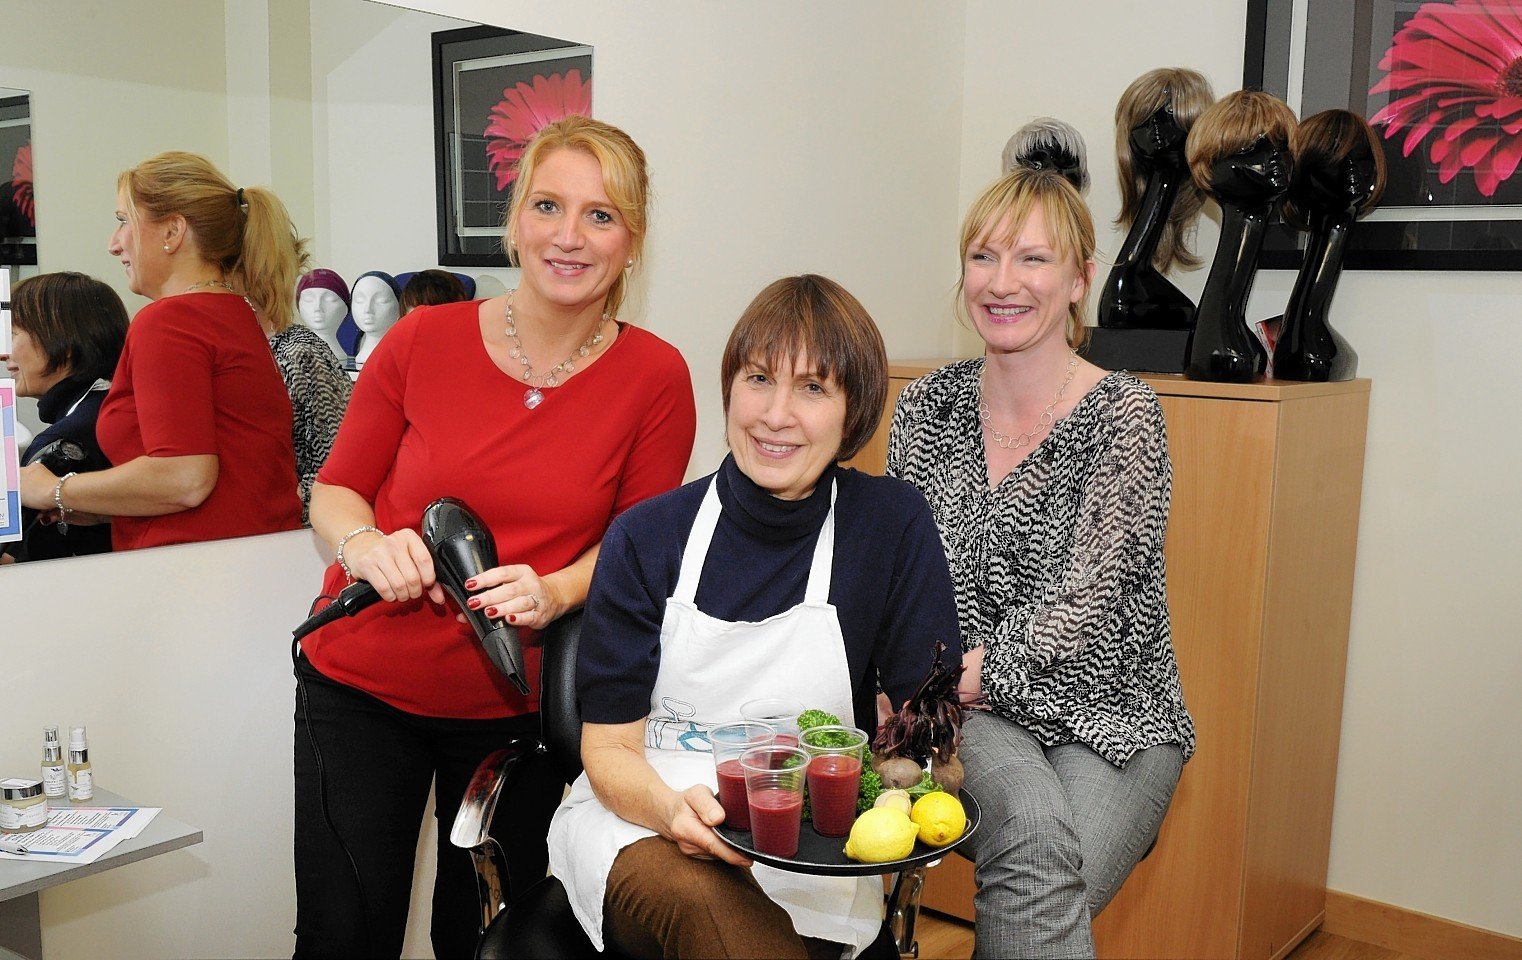 From left to right: Julie Sangster, hairdresser and wig specialist, Nutritionist Cathy Clark and  Service Manager Lucy Whiteman.